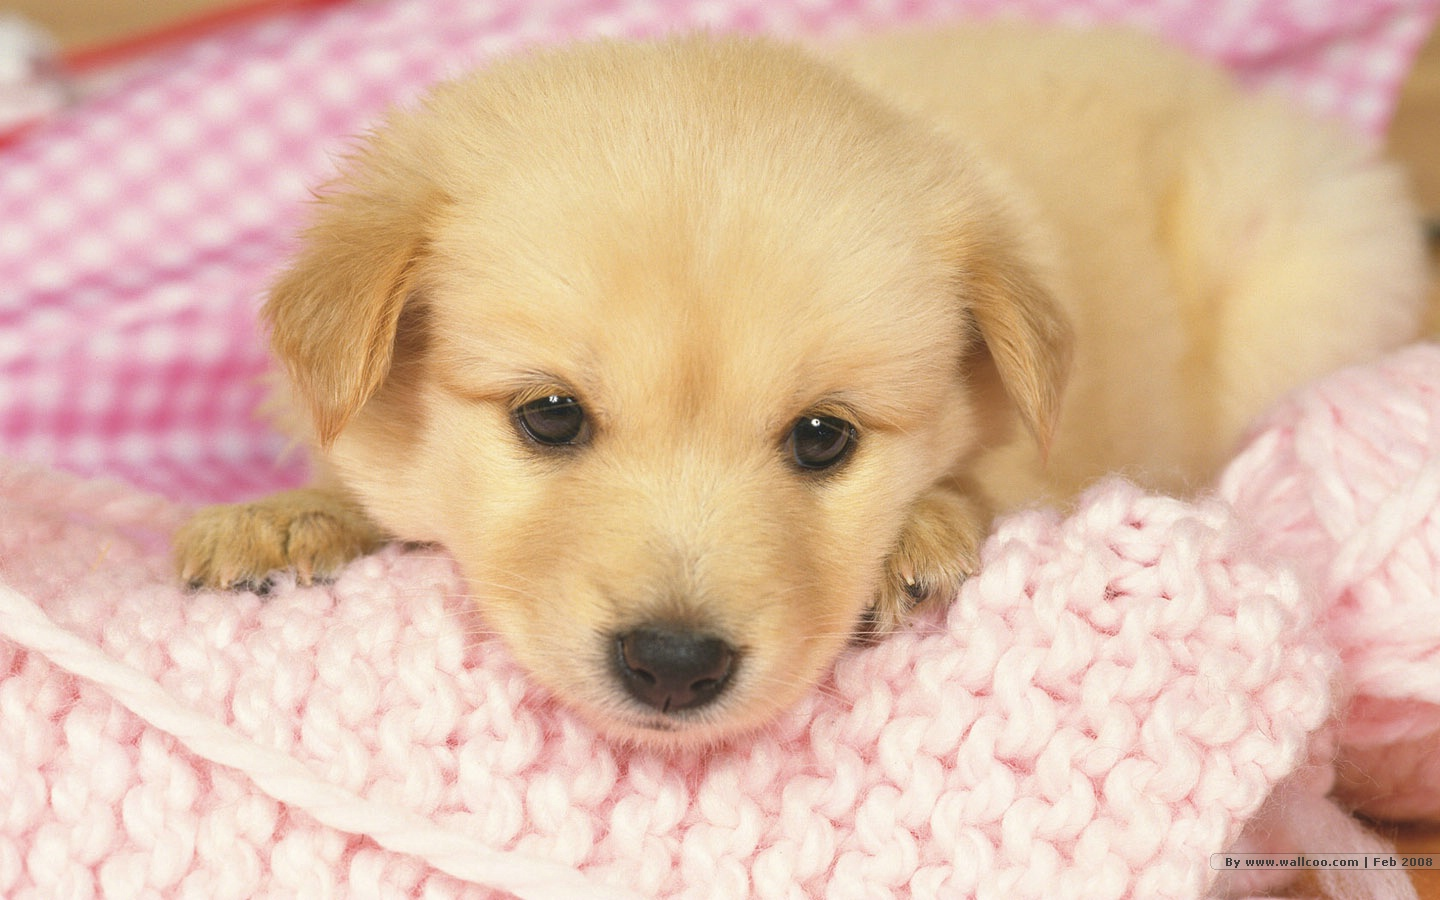 1440900 Lovely Puppy wallpapers Lovely Puppies Photos 1440x900 NO 1440x900